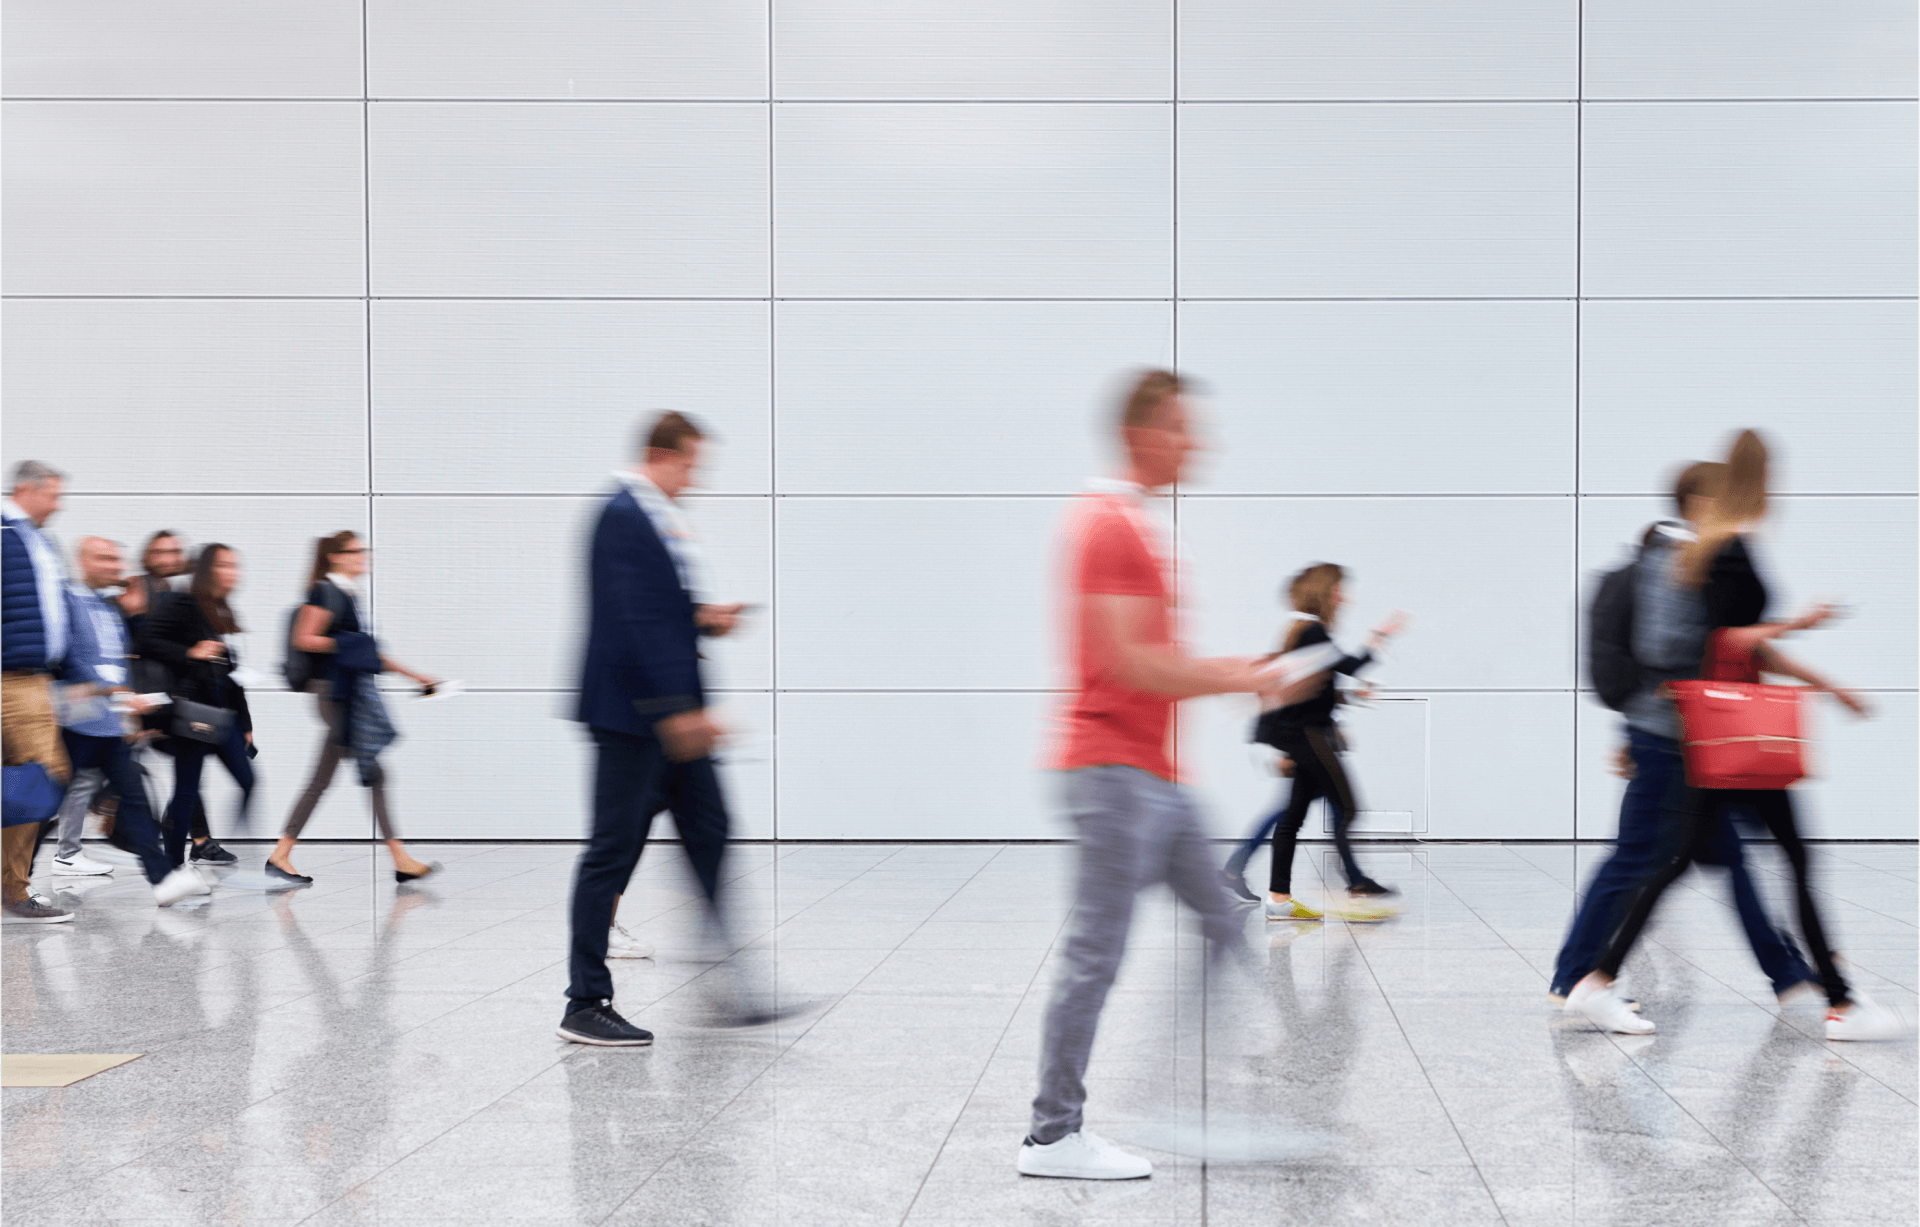 Image of groups of people walking quickly